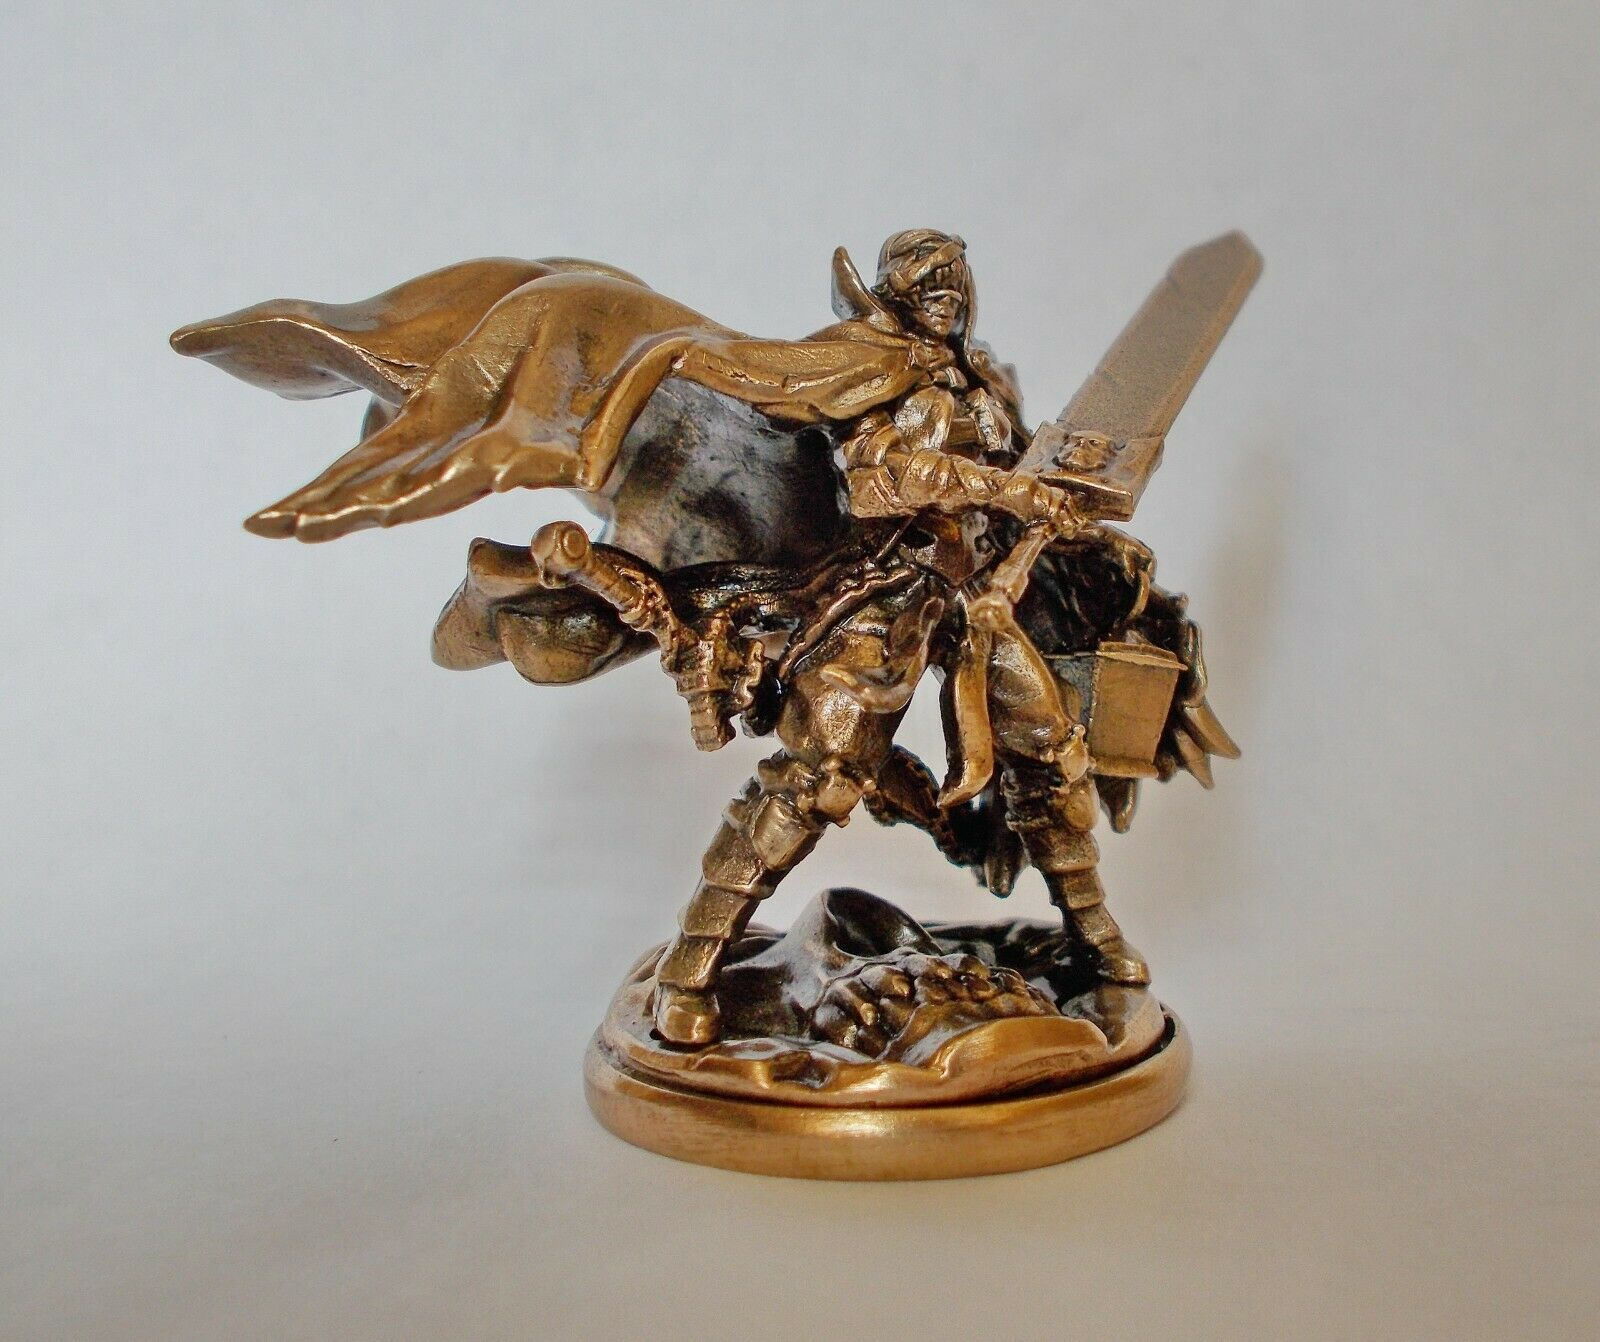 Kingdom Death Messenger of Humanity BRONZE (metal) conversion  DK17